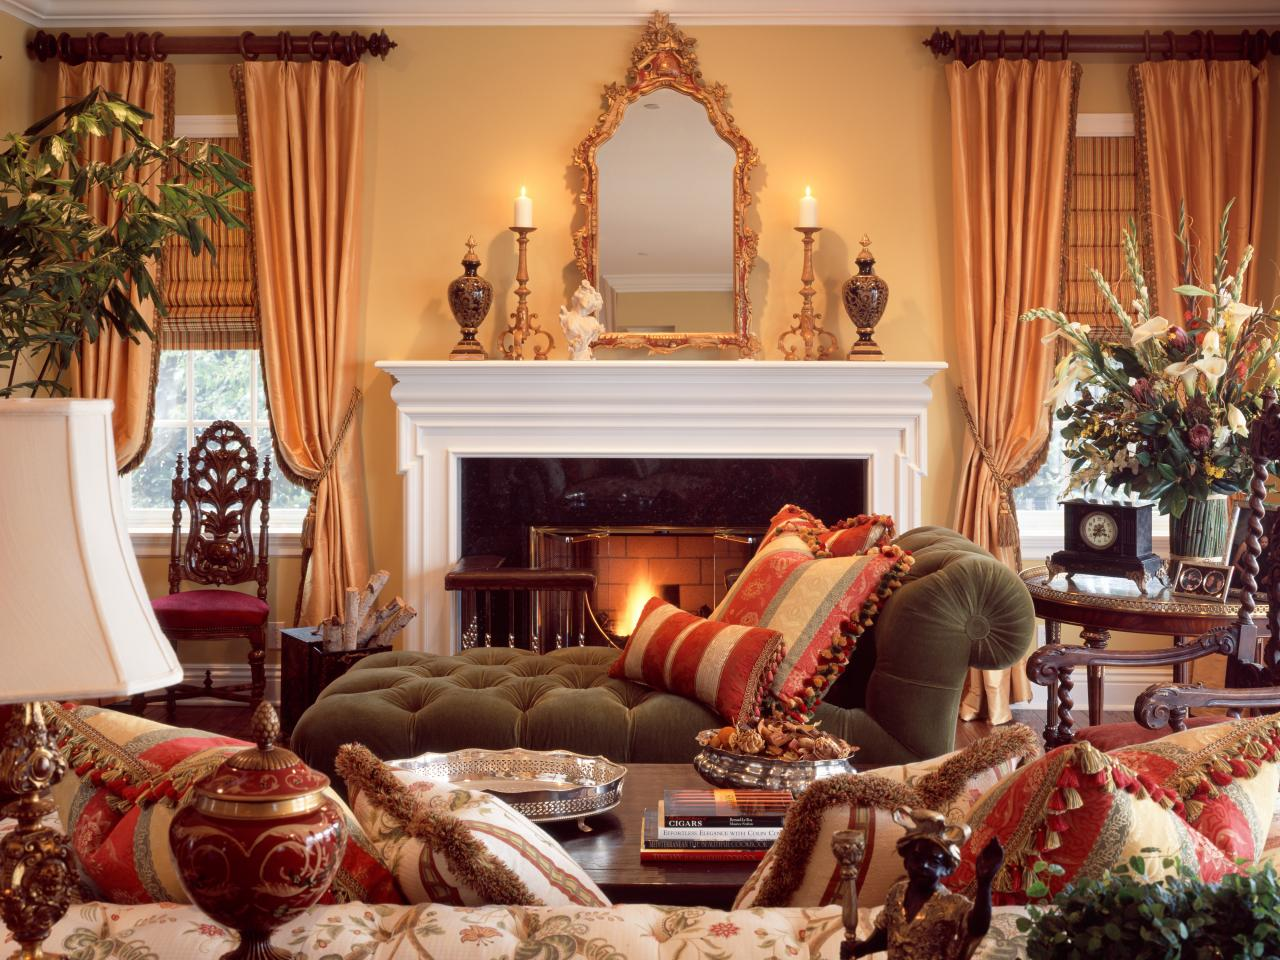 traditional style 101 from hgtv hgtv - Interior Homes Designs